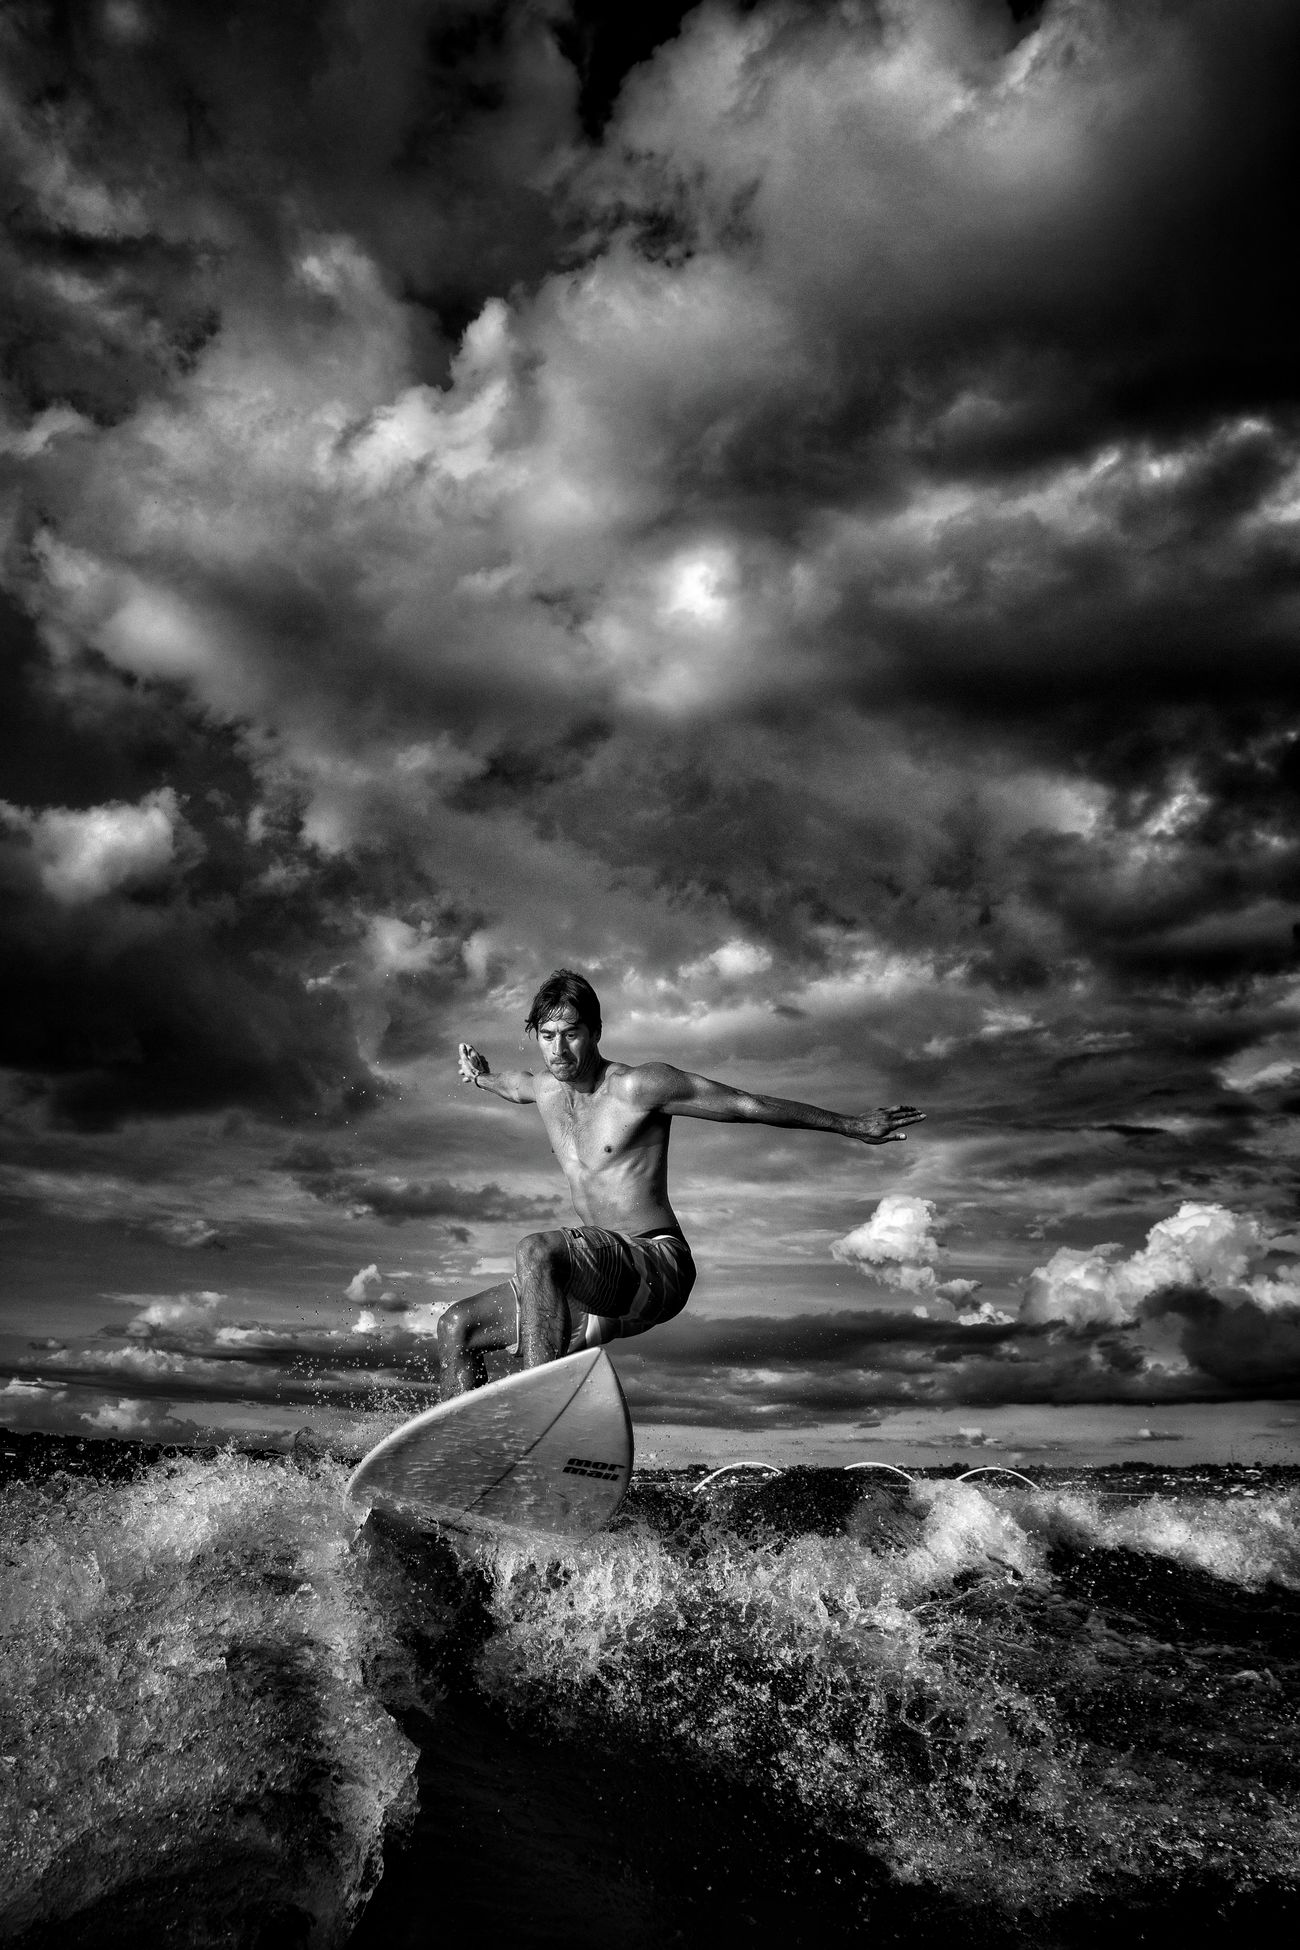 Live For The Story Cloud - Sky Sea Water Sky Outdoors Men Leisure Activity Beach Athlete Sports Photography Sports Sport Lake Wakeboarder Wakesurfing Wakesurf Wakeboarding Life  Wakeboarding Life  Summer Wakeboarding Life  Vacations Wakeboarding Life